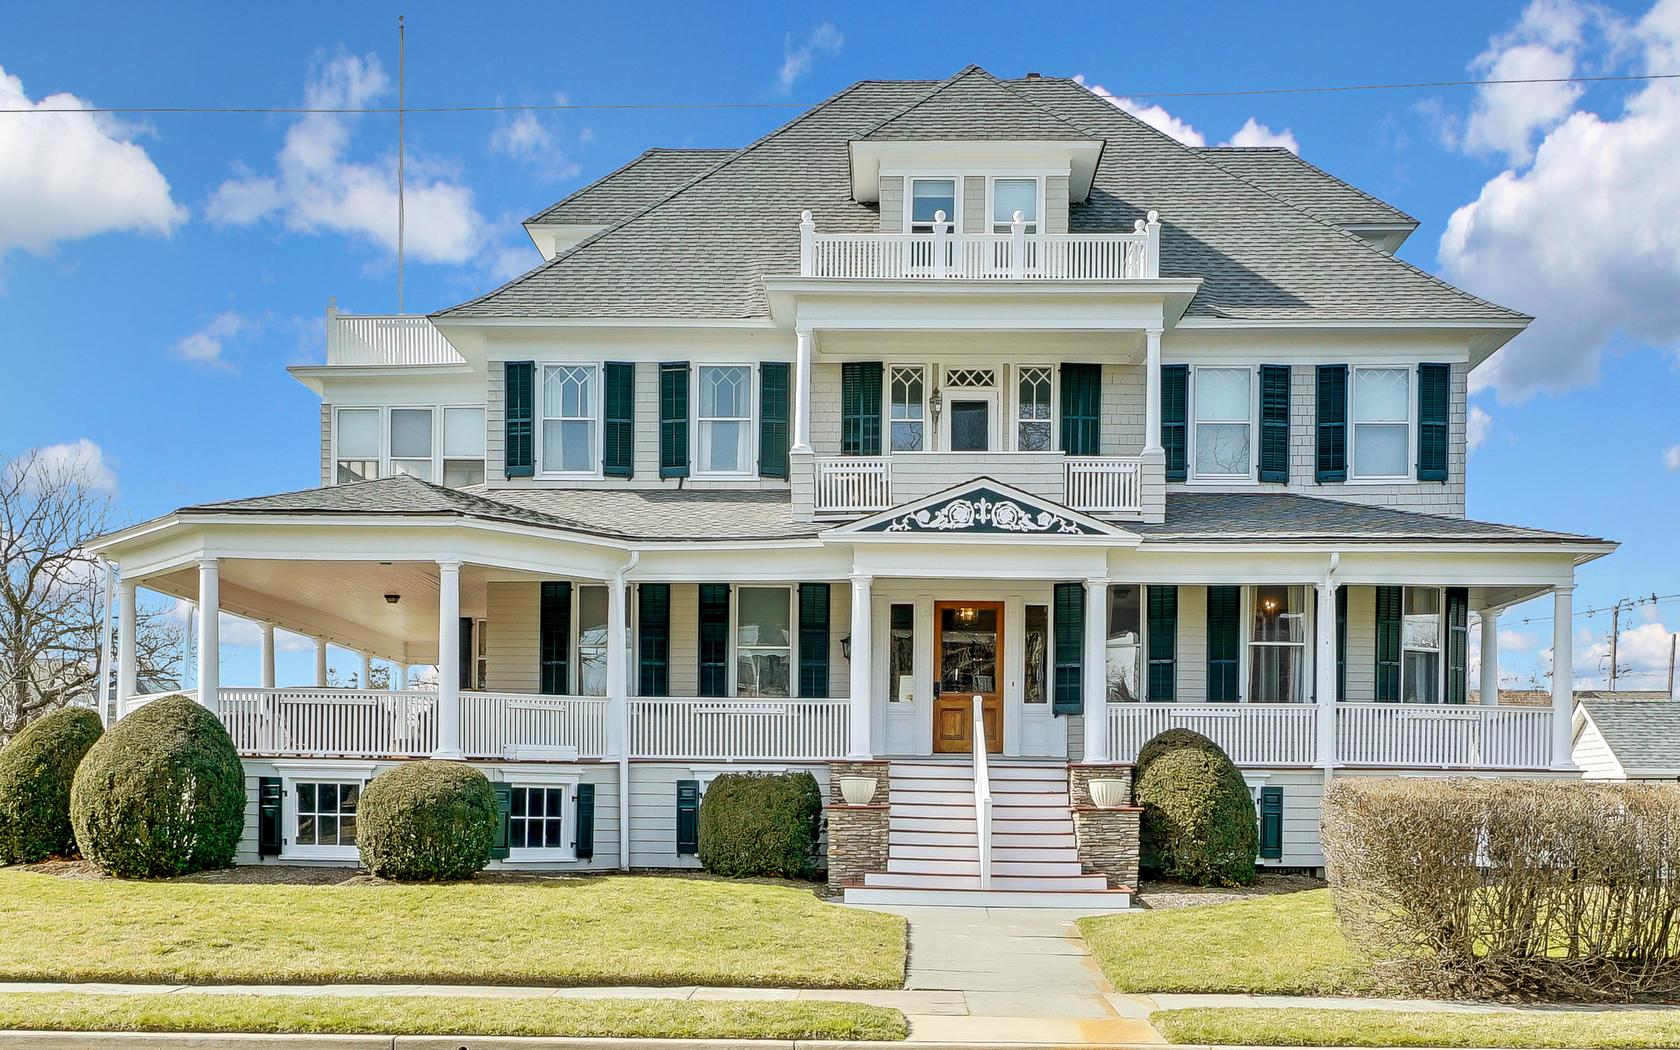 Casa Unifamiliar por un Venta en Luxurious Avon Colonial 302 Garfield Avenue Avon By The Sea, Nueva Jersey 07717 Estados Unidos